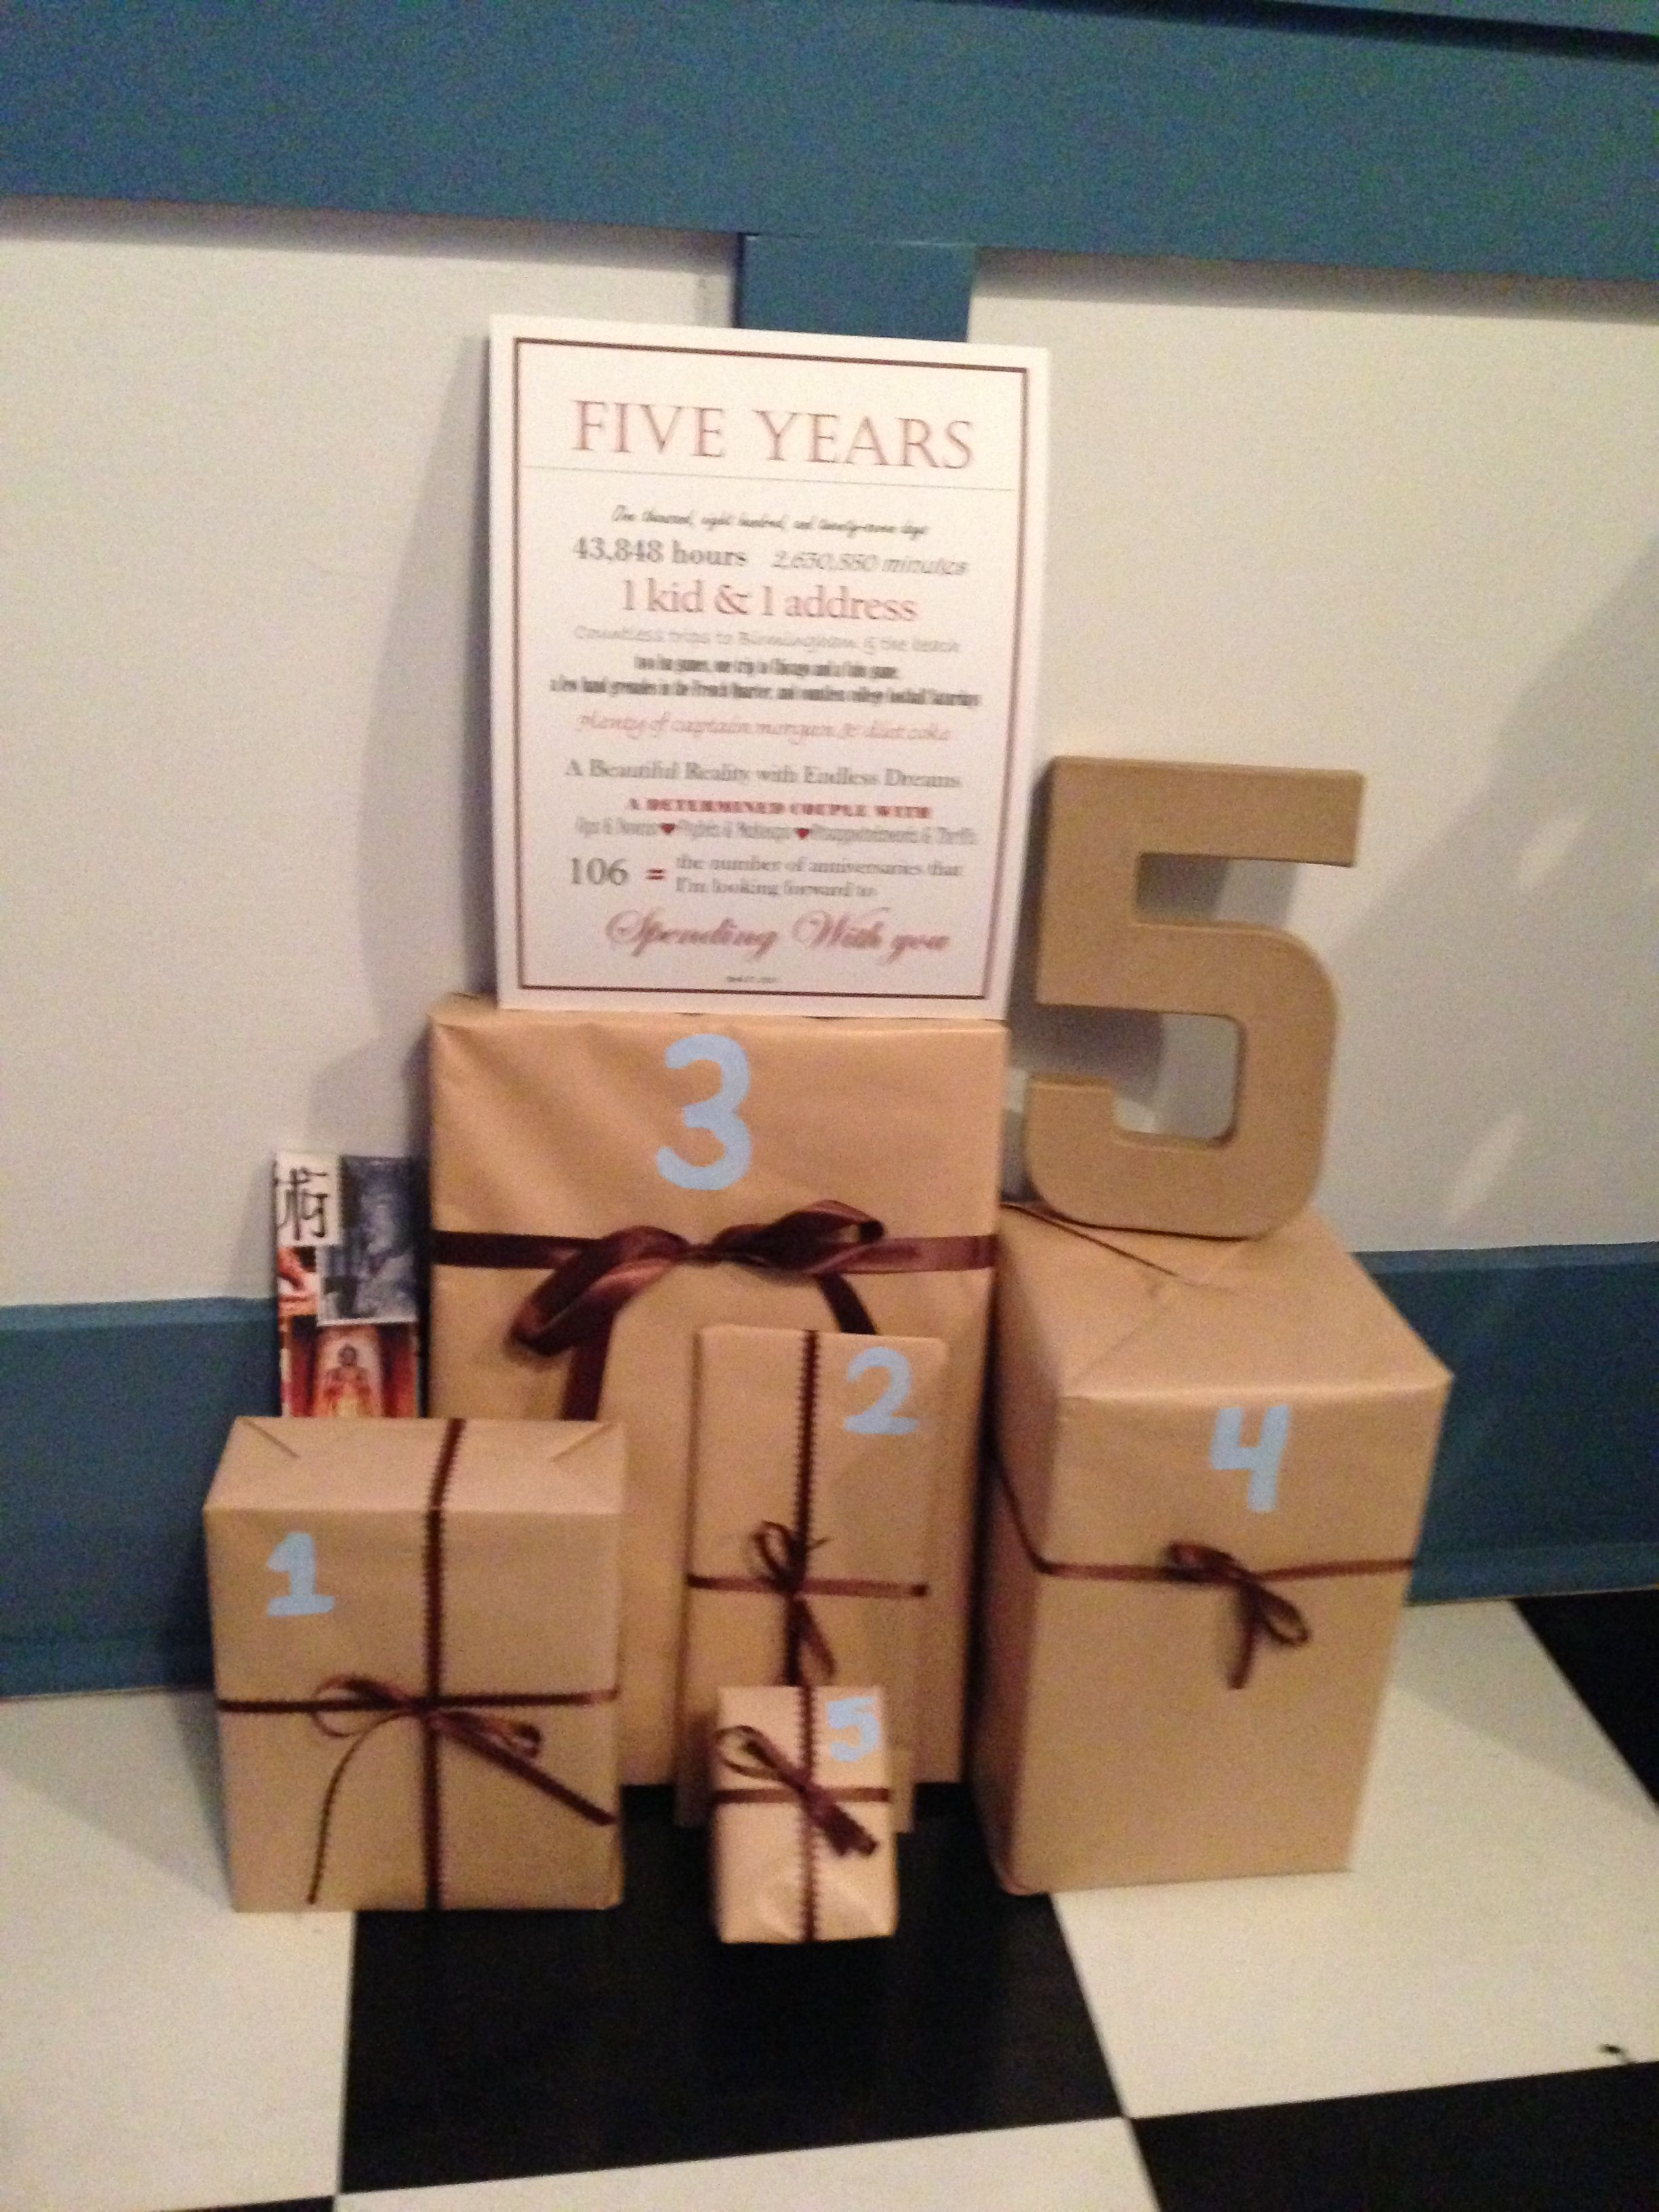 Pin By Amy Cooper On Jeromy 5 Year Anniversary Gift Wood Anniversary Gift Mens Anniversary Gifts